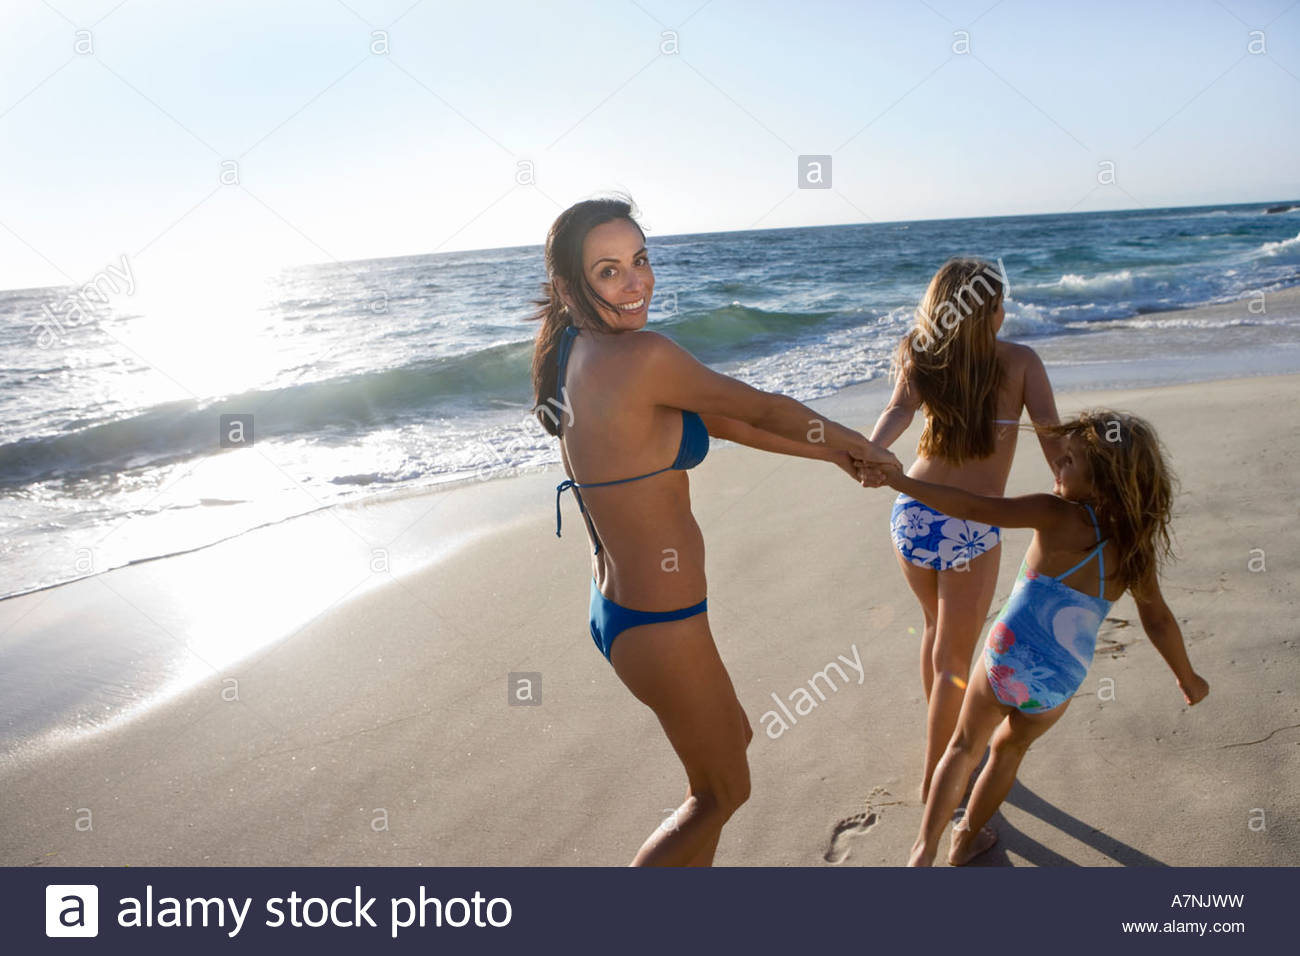 Two girls 5 12 wearing swimwear pulling mother along sandy beach woman looking over shoulder smiling rear view sunlight - Stock Image